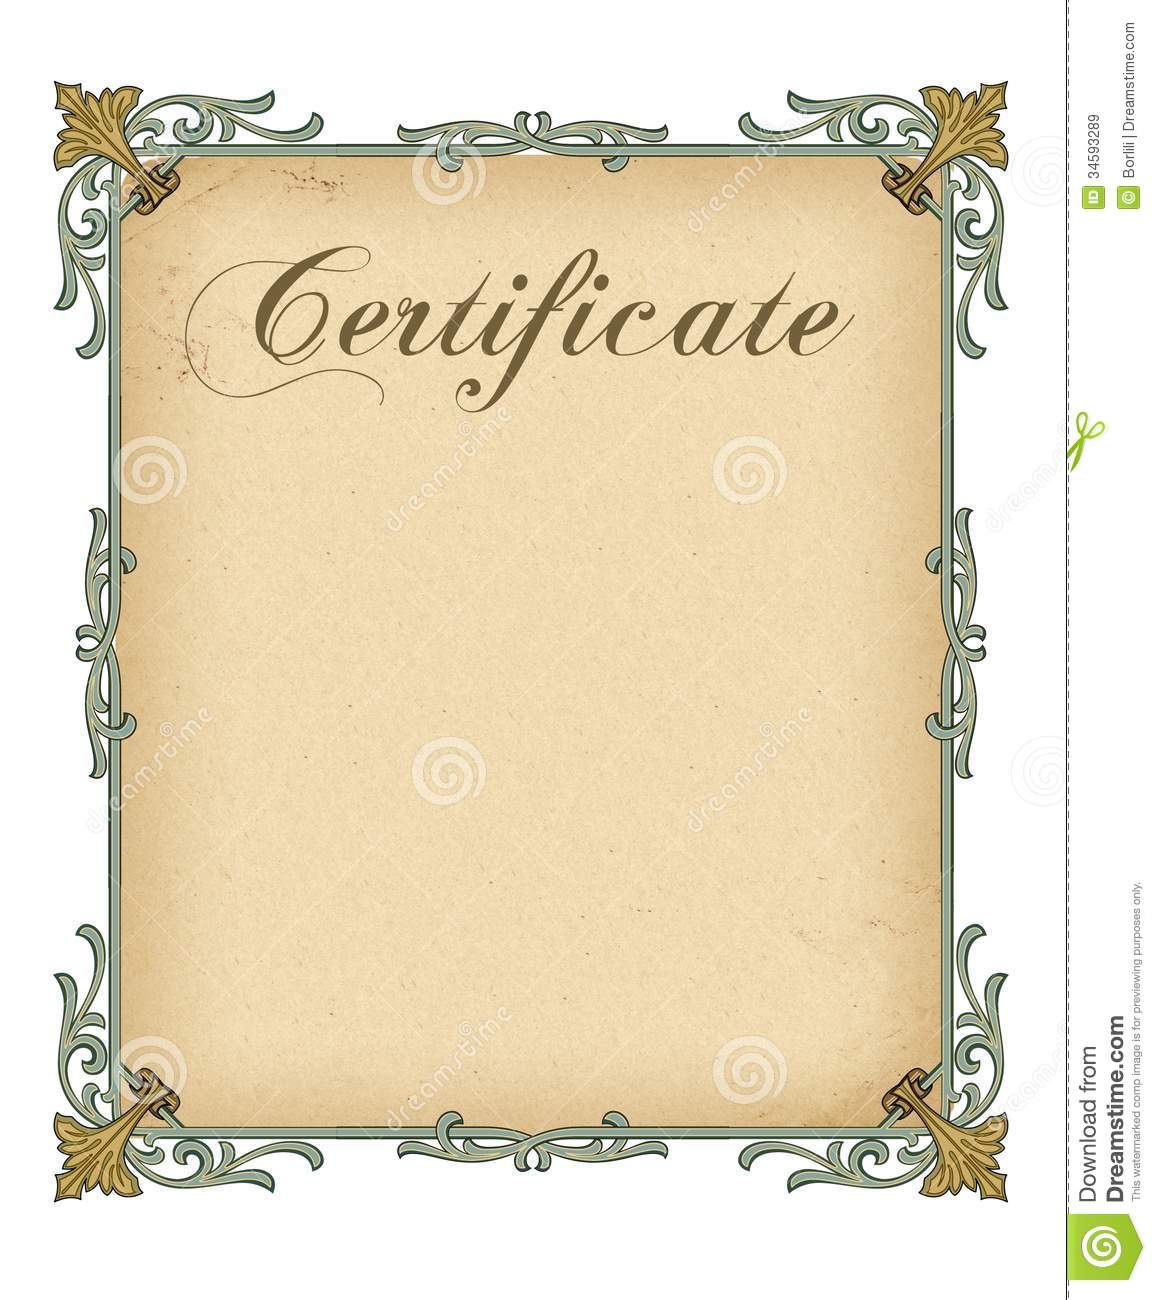 Free blank training certificate template free certificate templates for completion of training free yelopaper Image collections